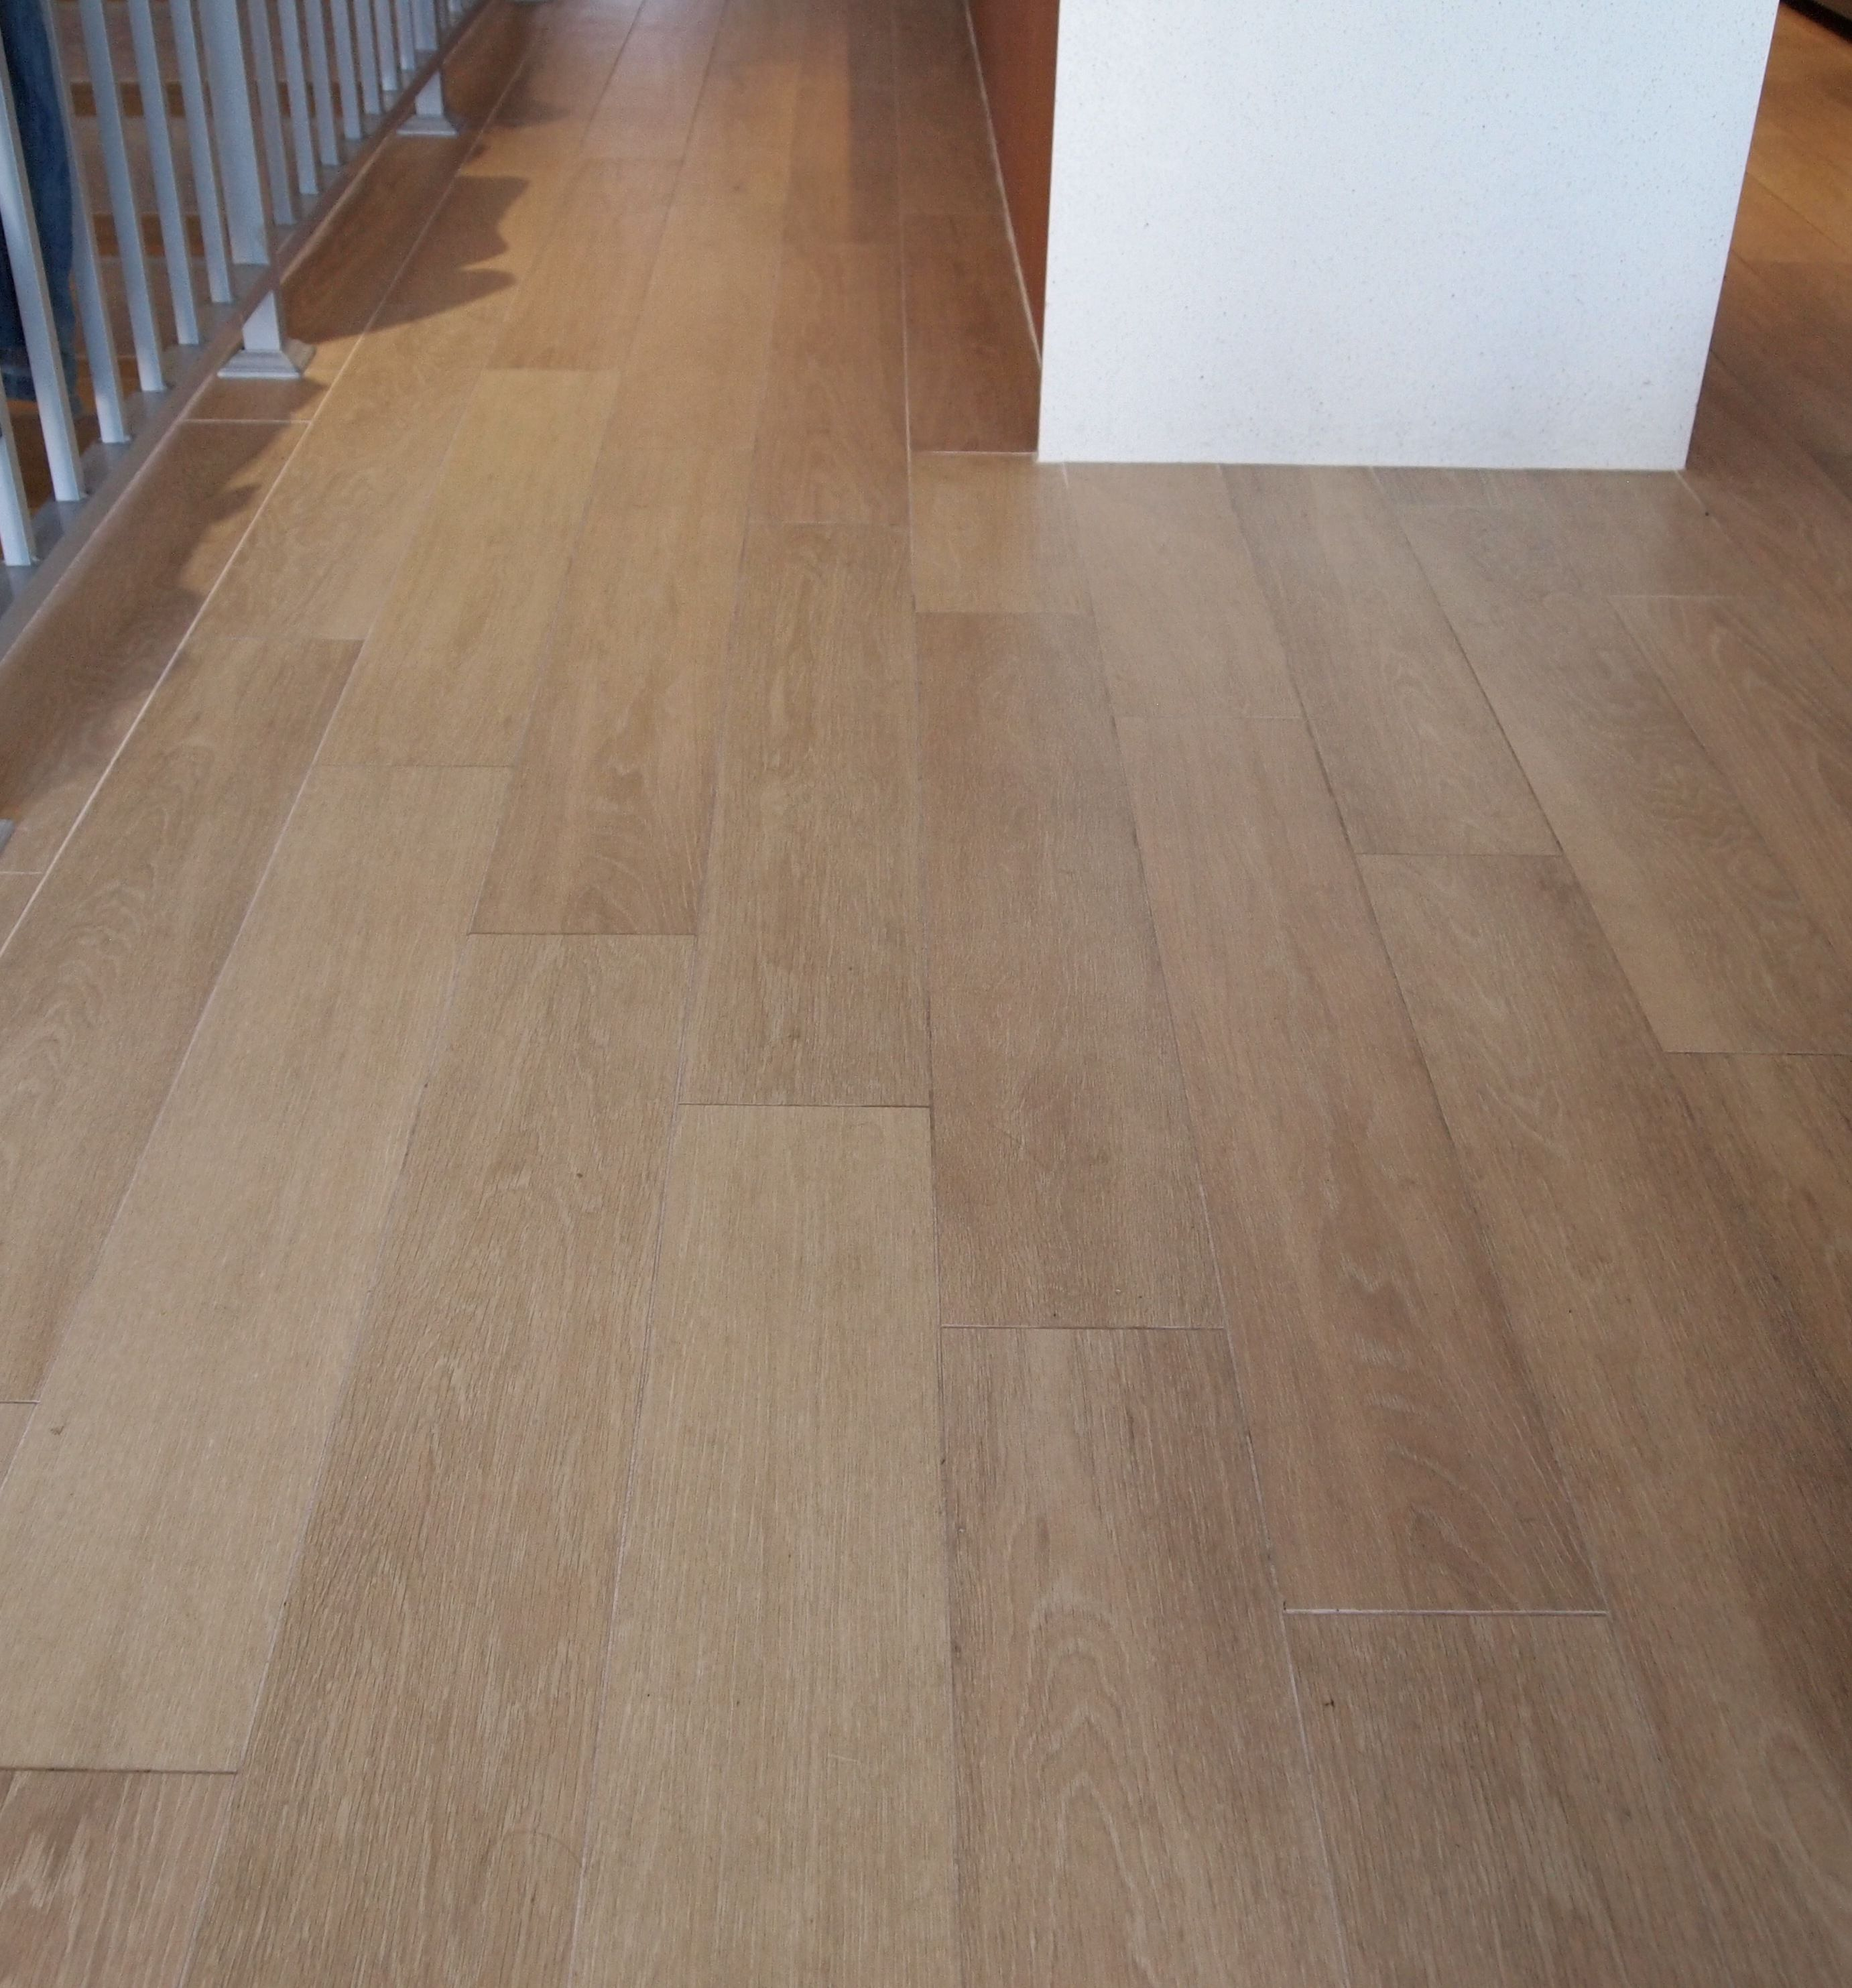 Spanish Wood Look Porcelain Floor Tiles Great For Kitchens